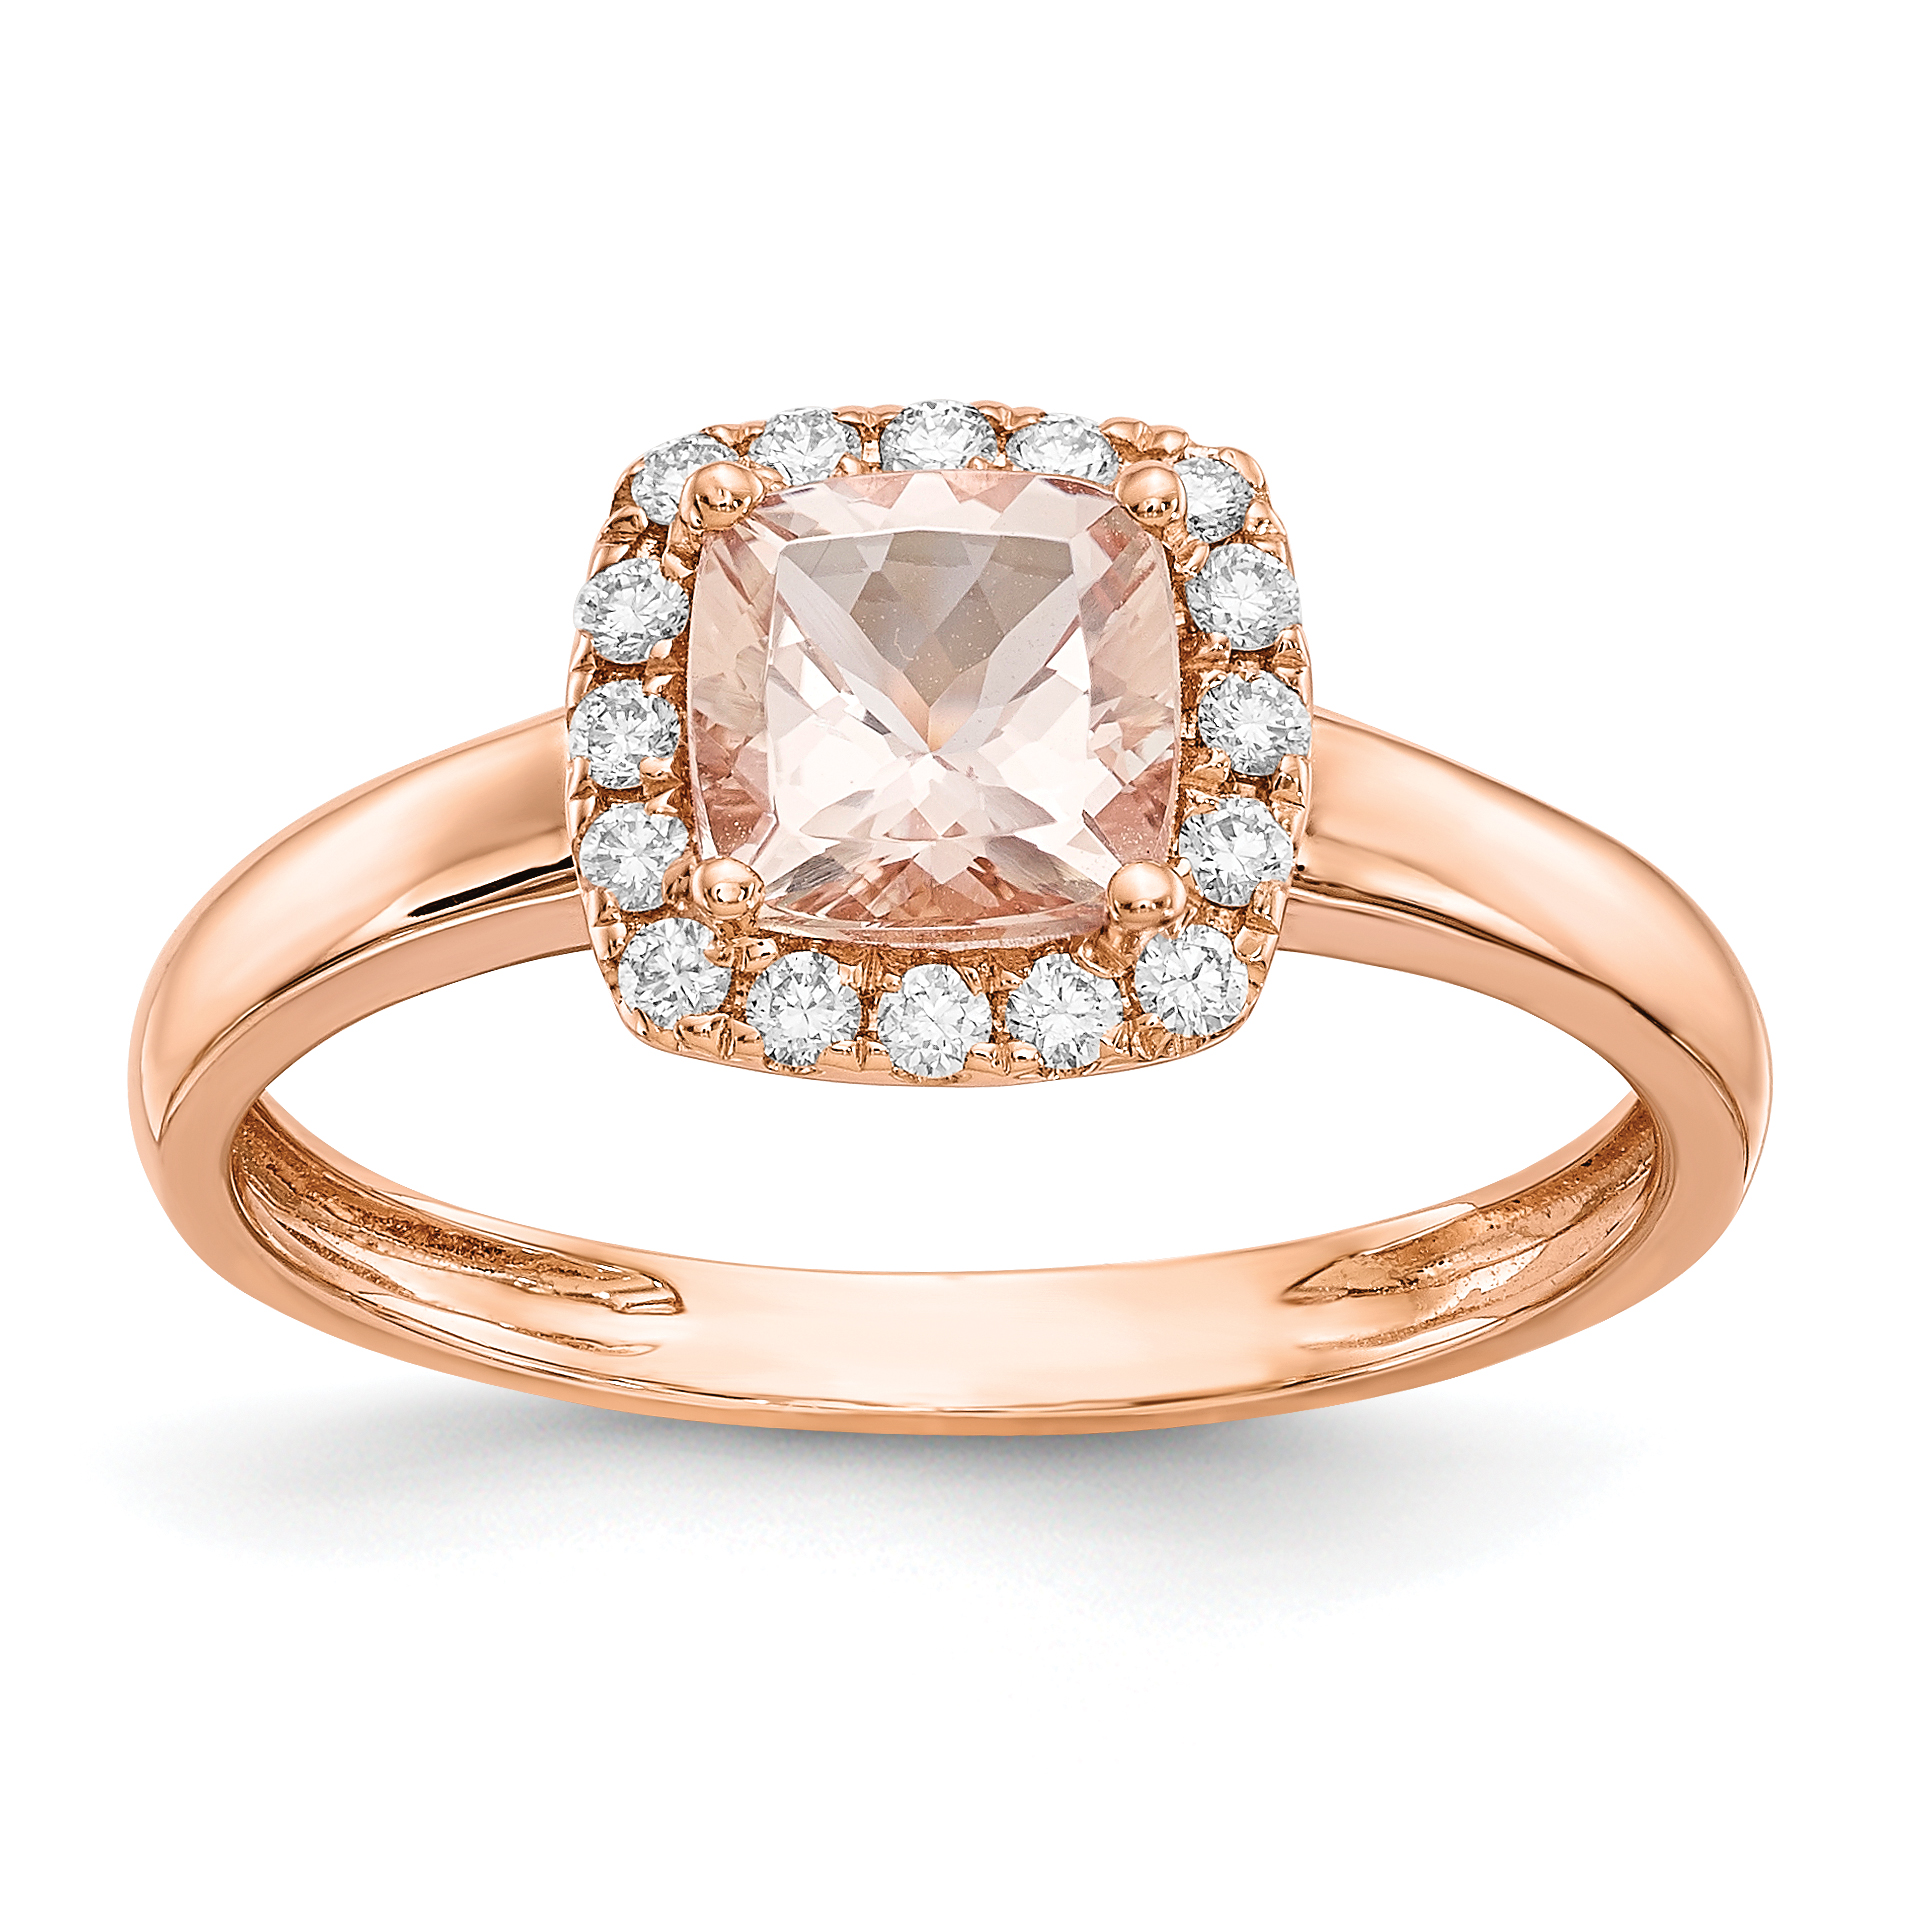 ICE CARATS 14kt Rose Gold Pink Morganite Diamond Band Ring Size 7.00 Fine Jewelry Ideal Gifts For Women Gift Set From... by IceCarats Designer Jewelry Gift USA